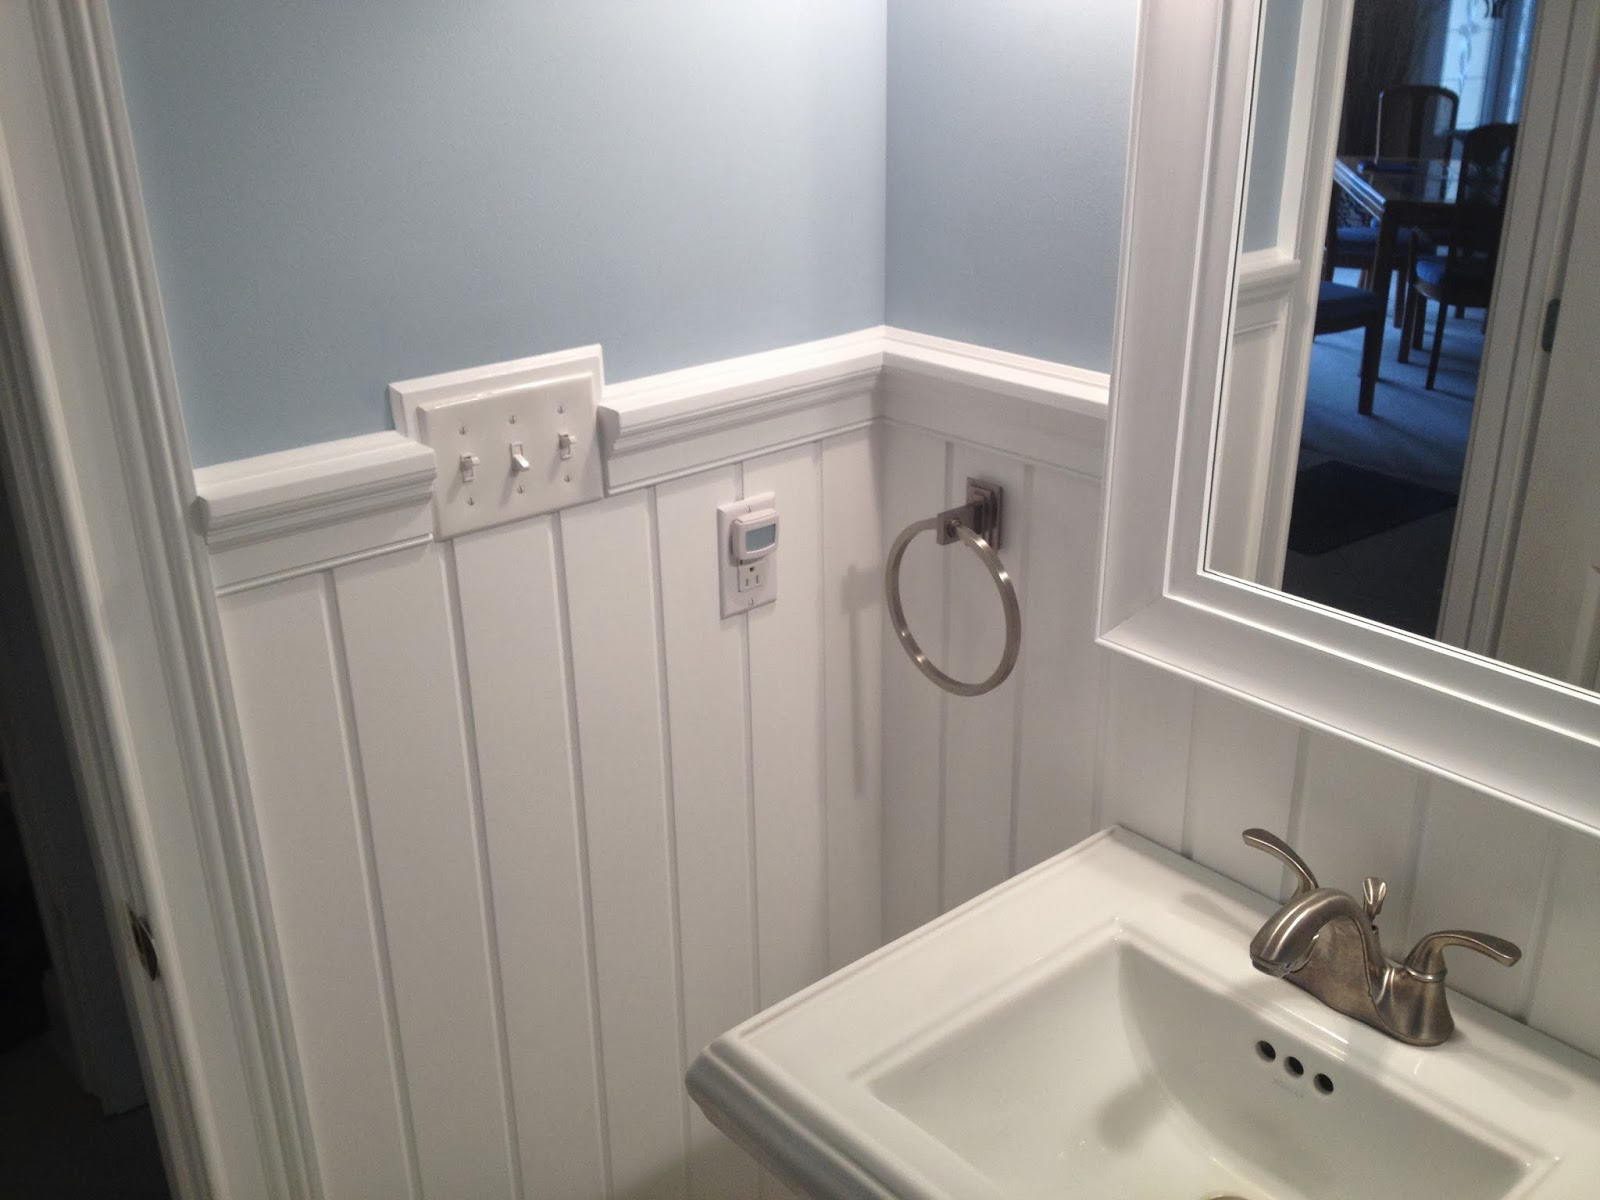 Pictures Of Chair Rails In Bathrooms Kitchen Step Stool Contemporary Bathroom Renovation Flawless Carpentry